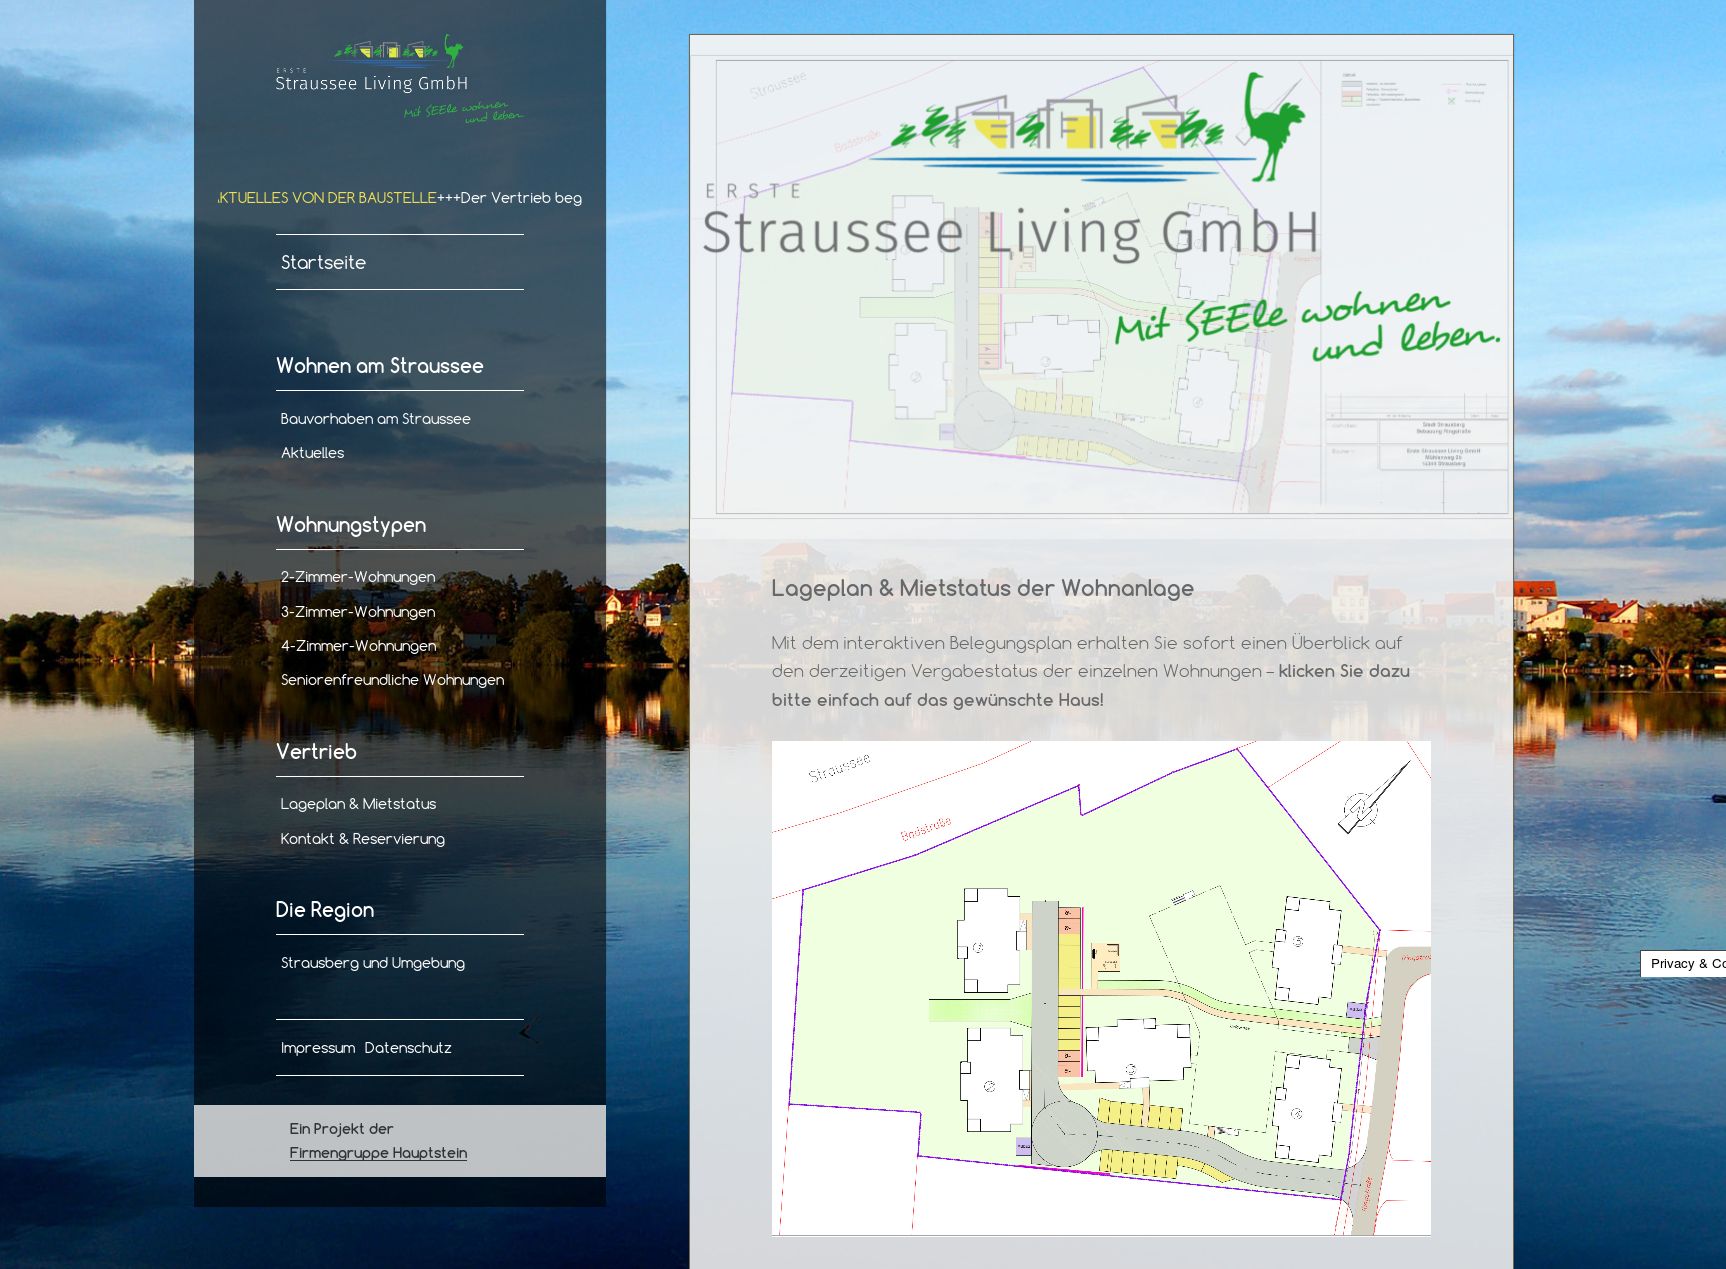 screenshot der Internetseite straussee-living.de